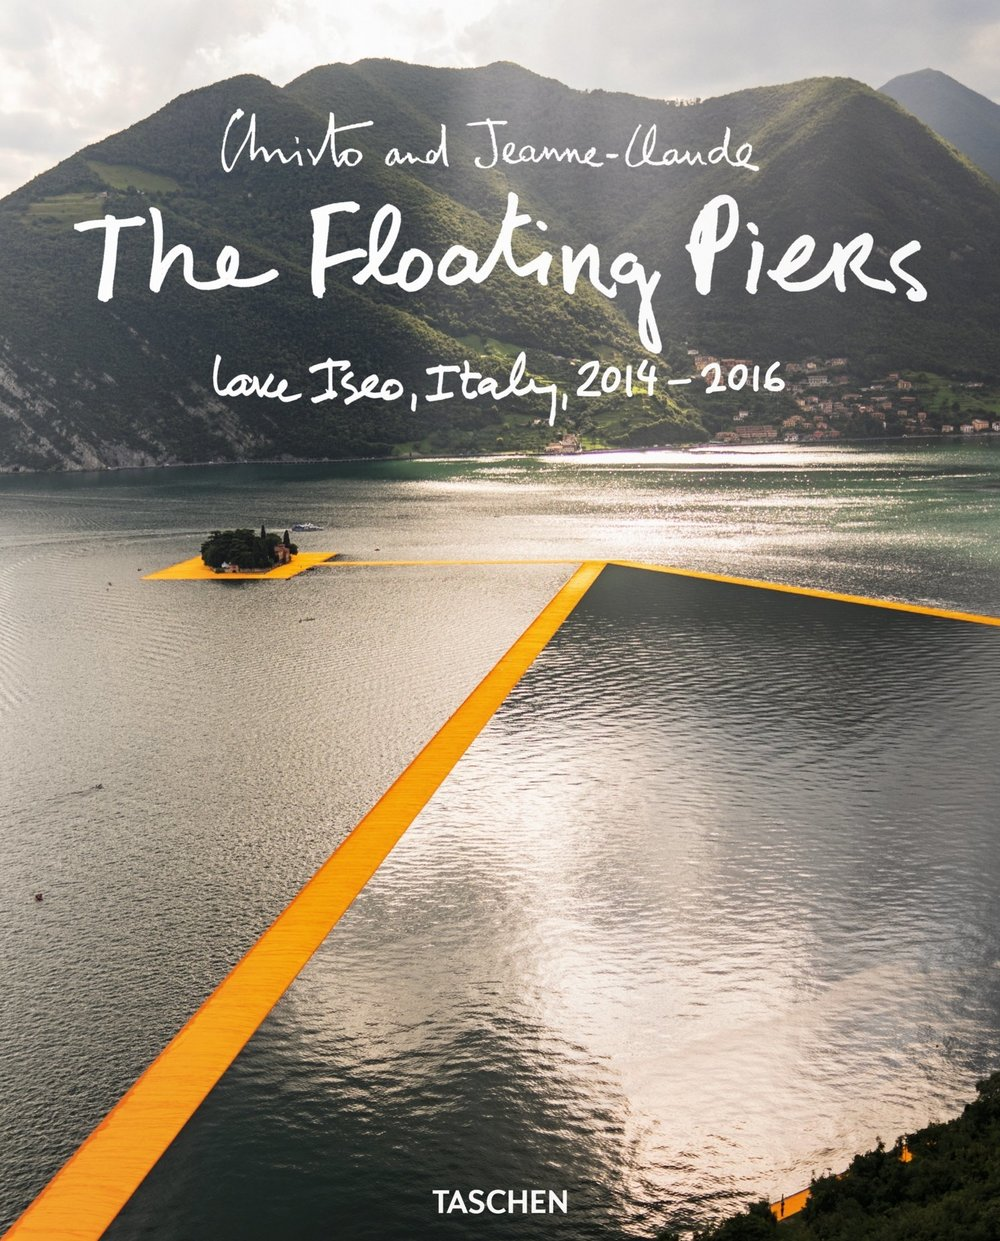 va-christo_floating_piers-cover_04653.jpg